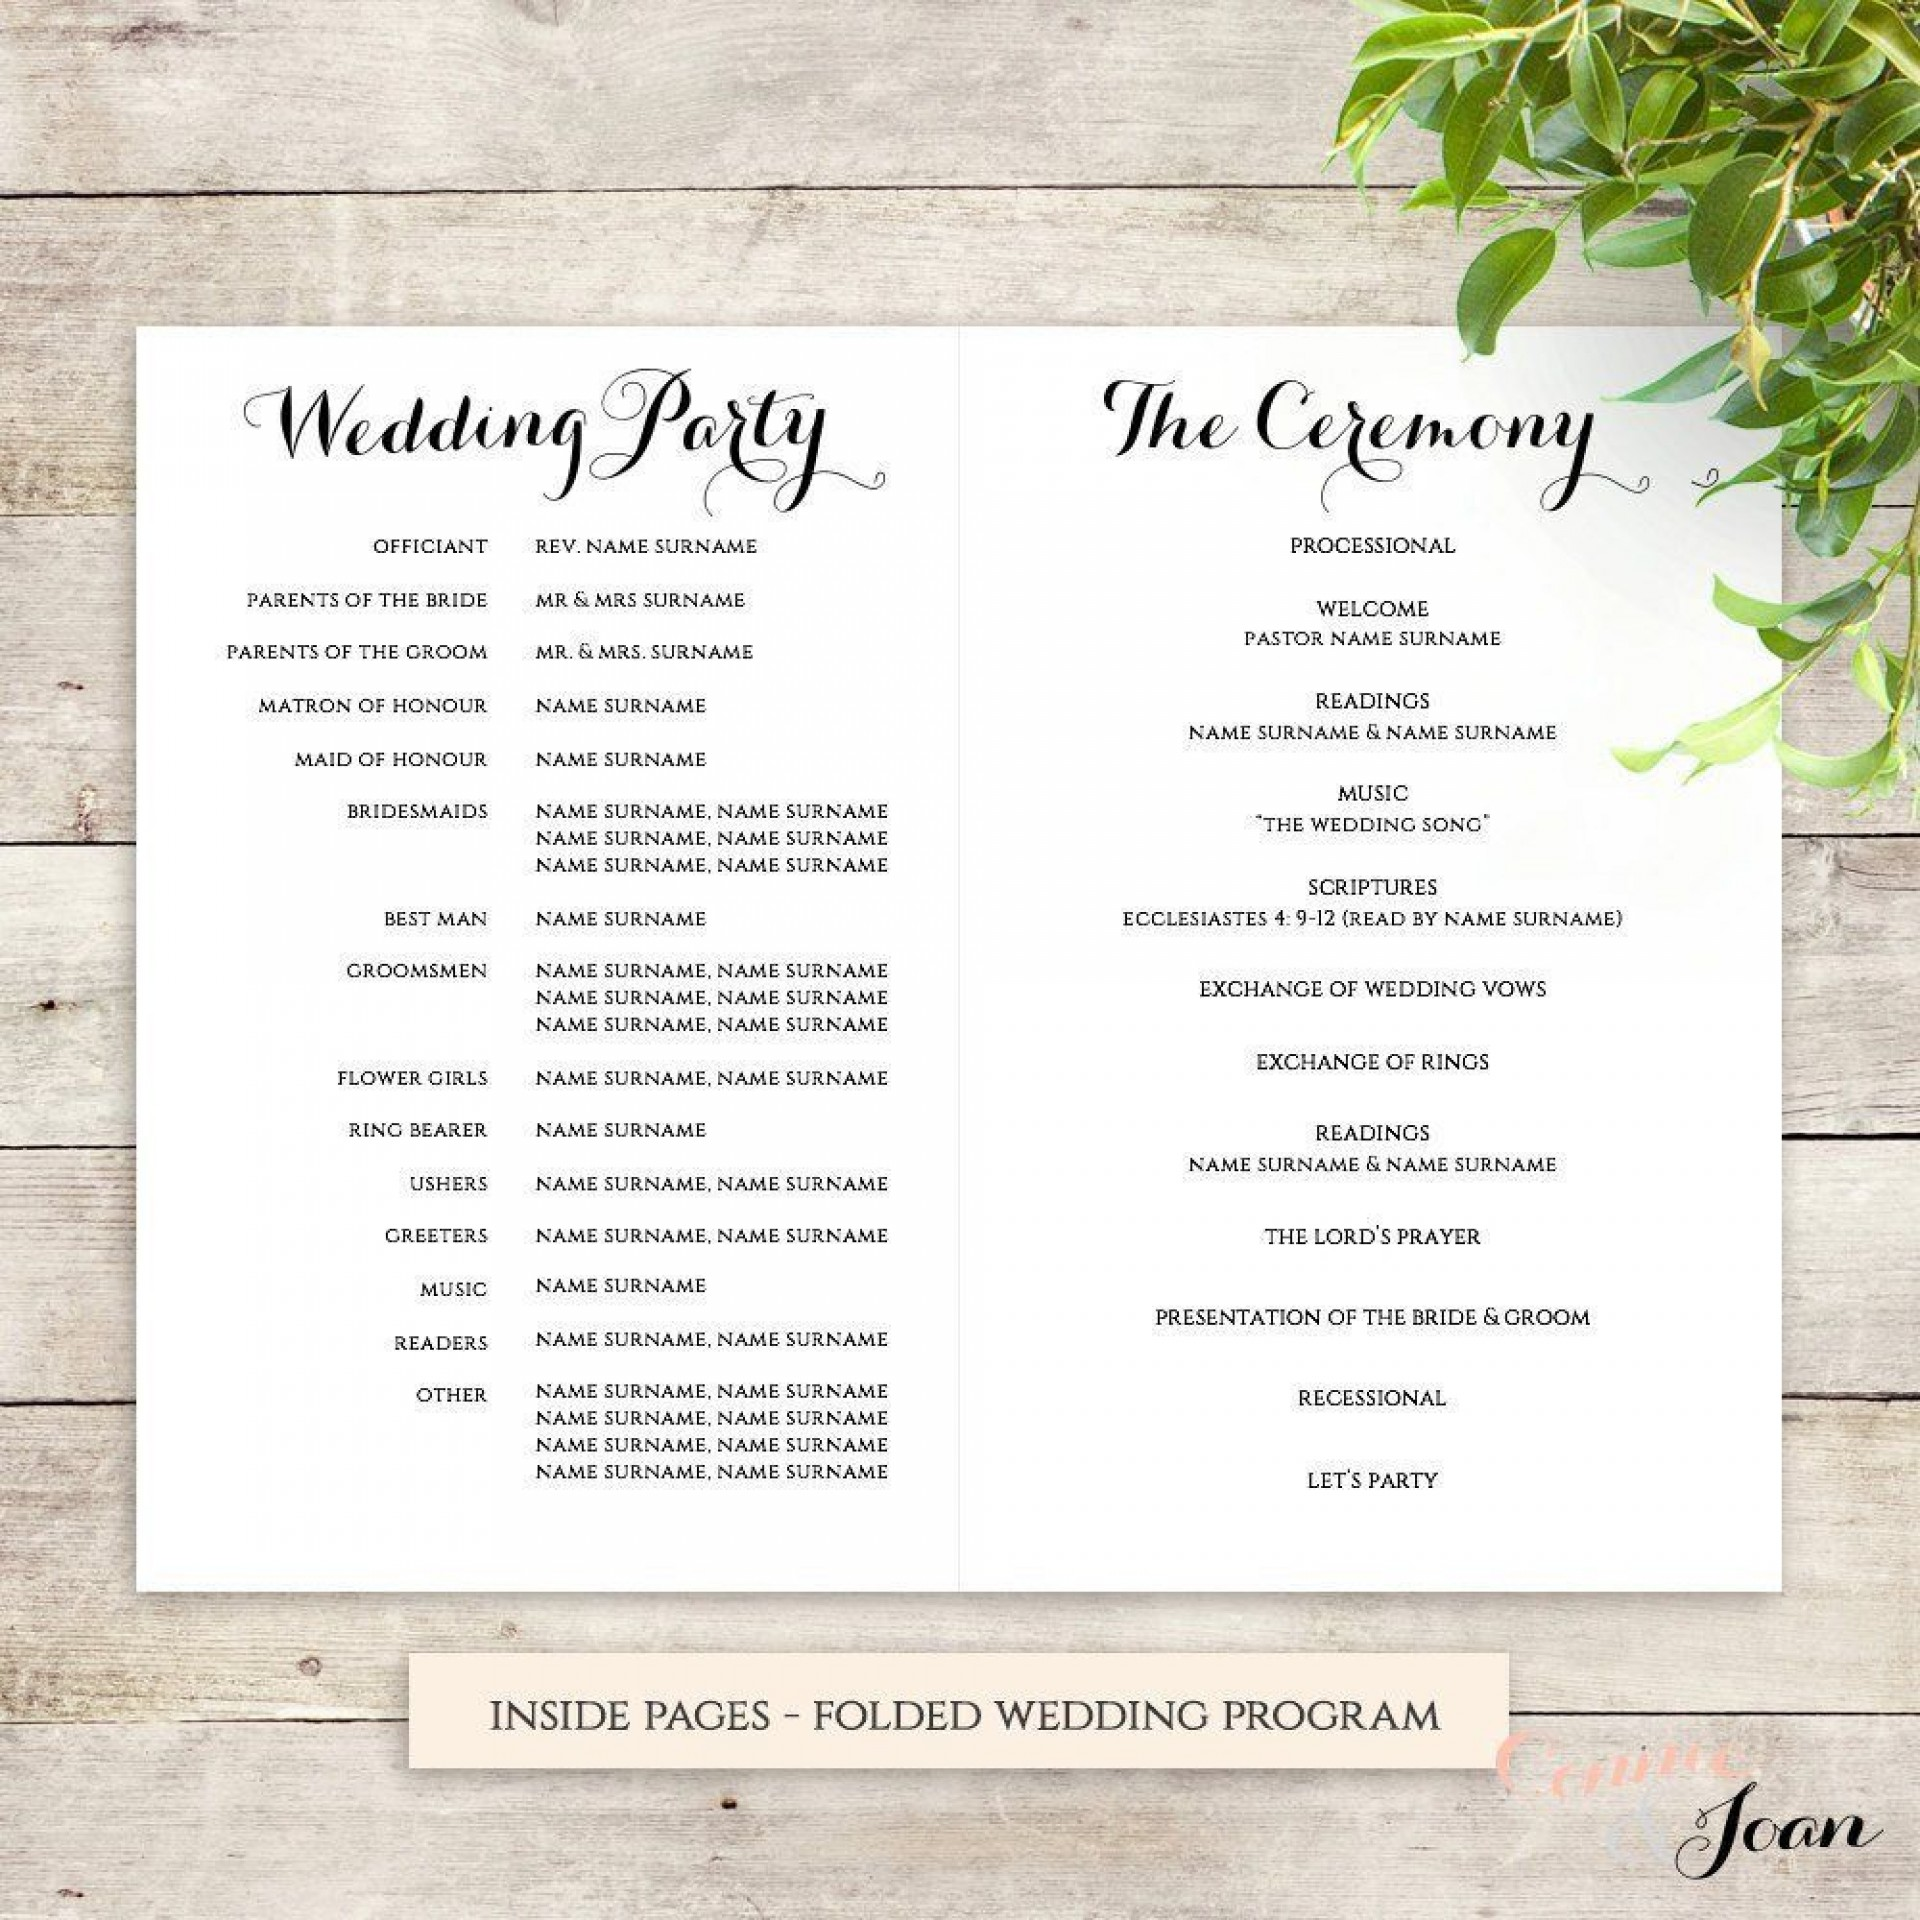 001 Frightening Wedding Order Of Service Template Free Photo  Front Cover Download Church1920